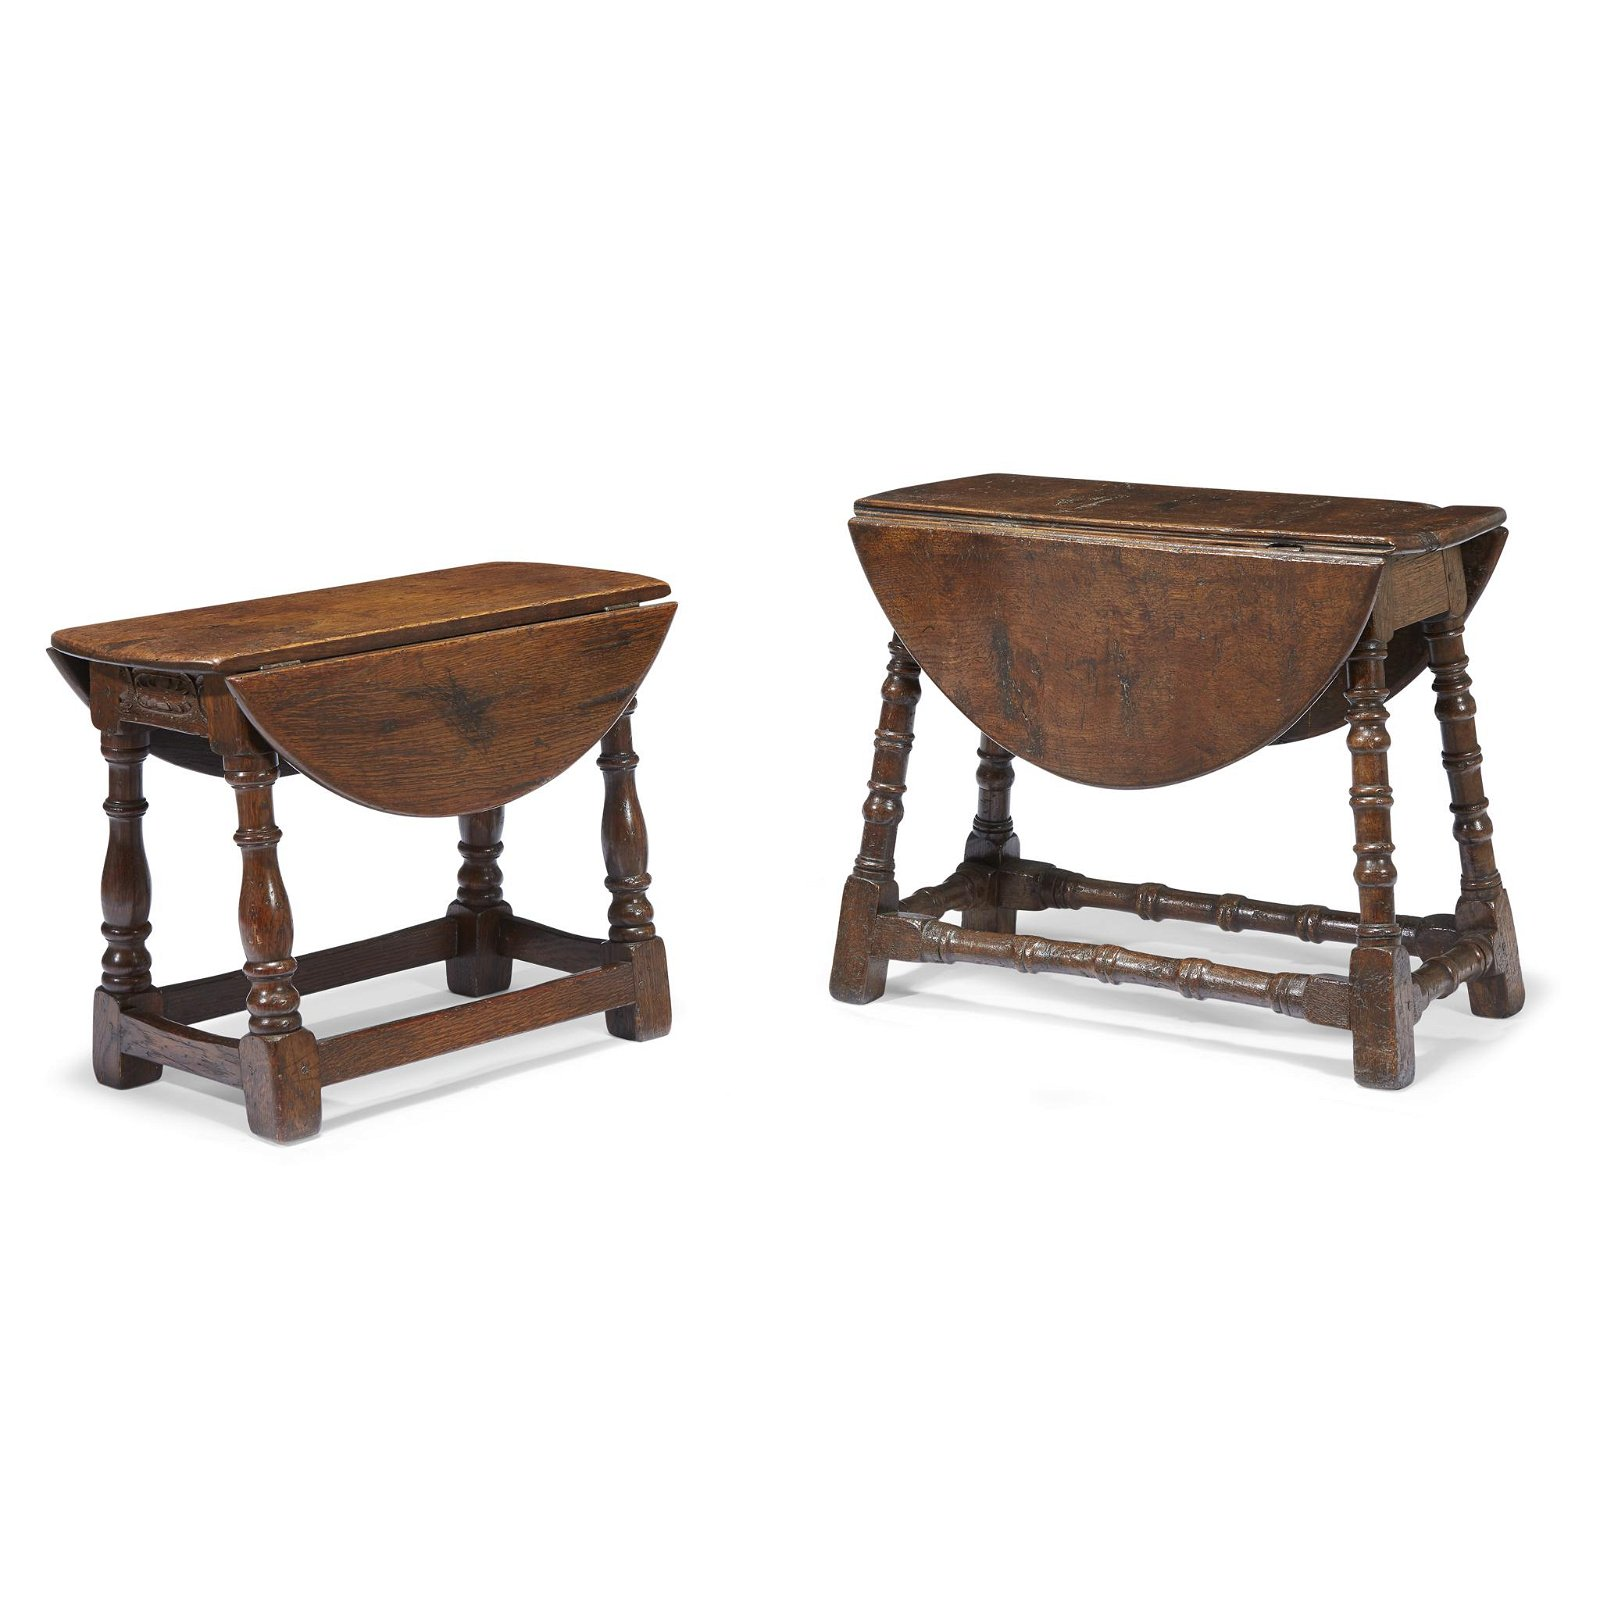 Two William & Mary carved oak joint stools with drop